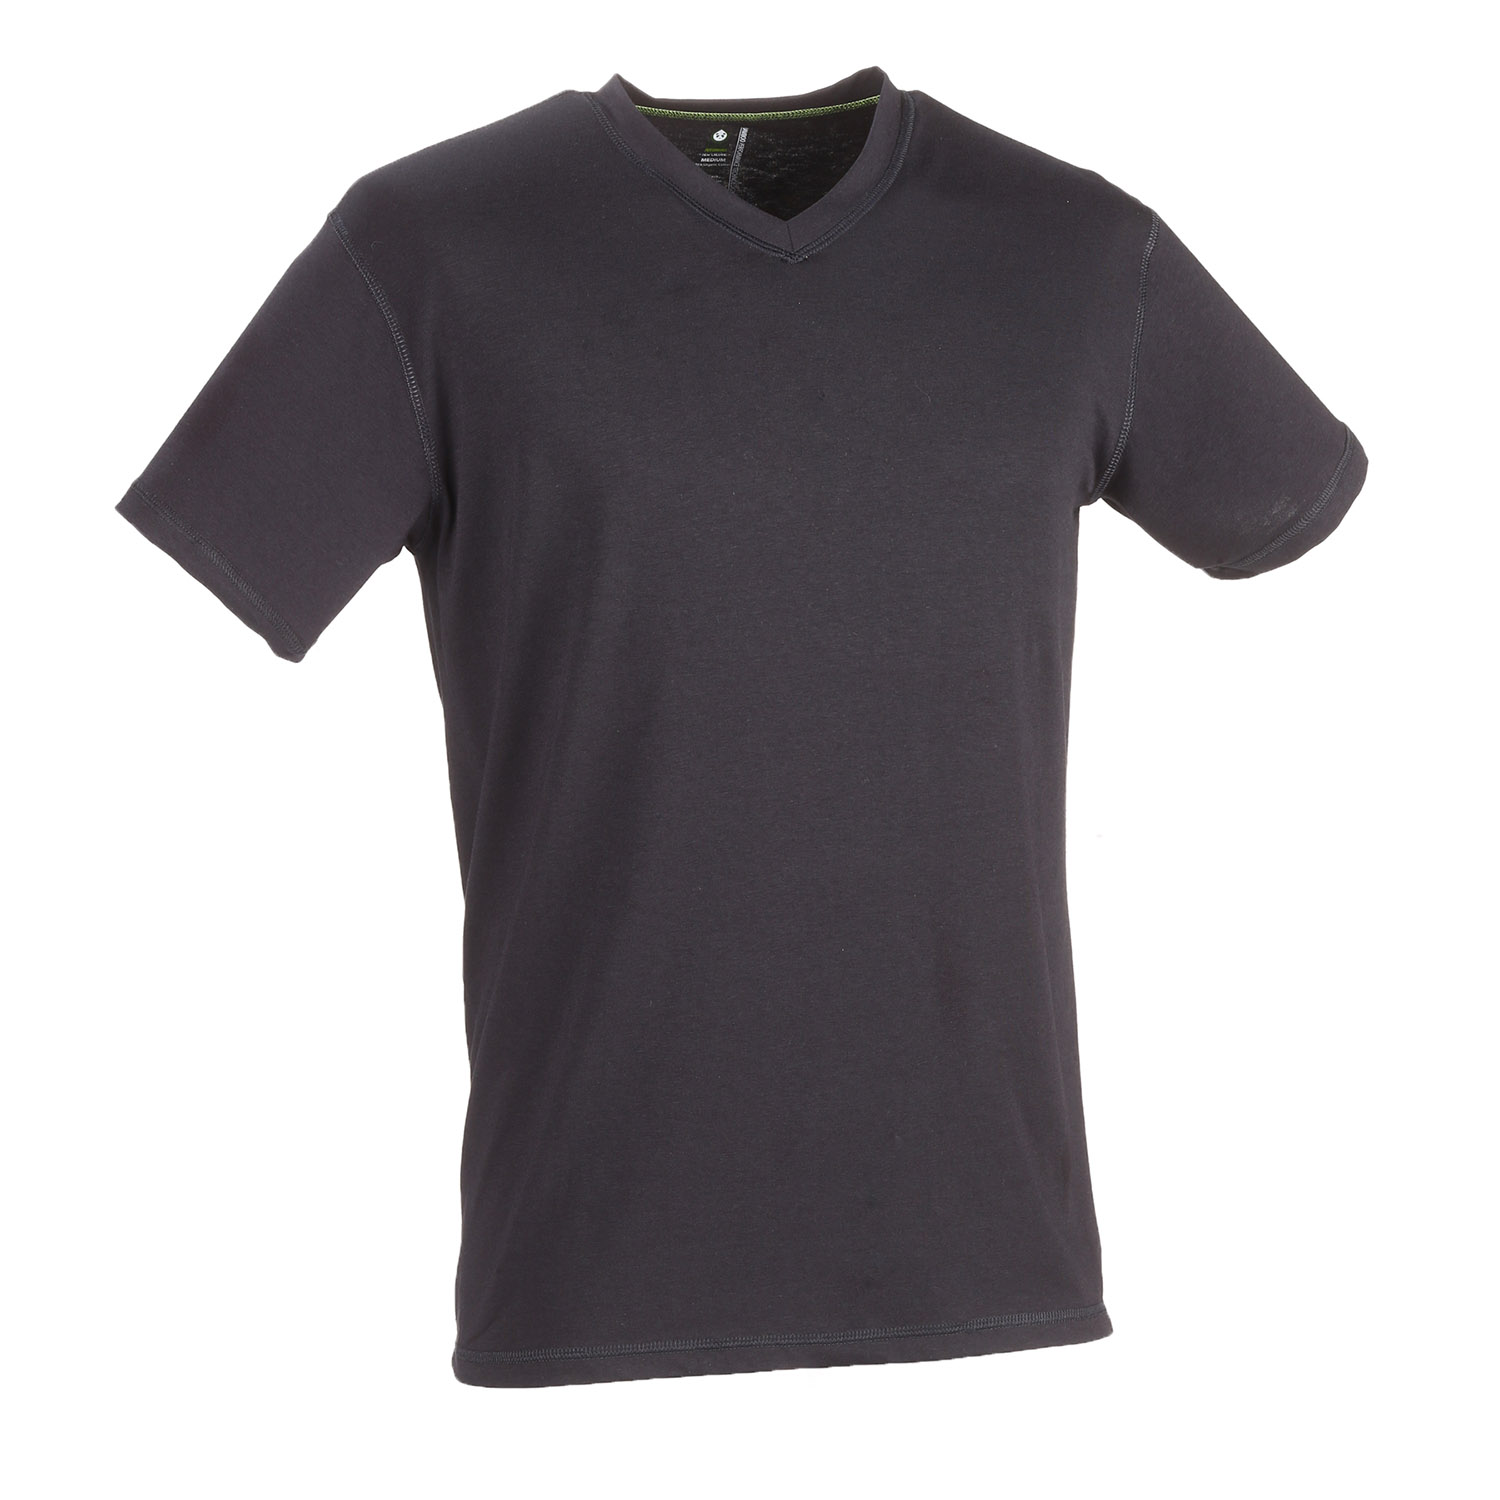 tasc Performance V-Neck Undershirt